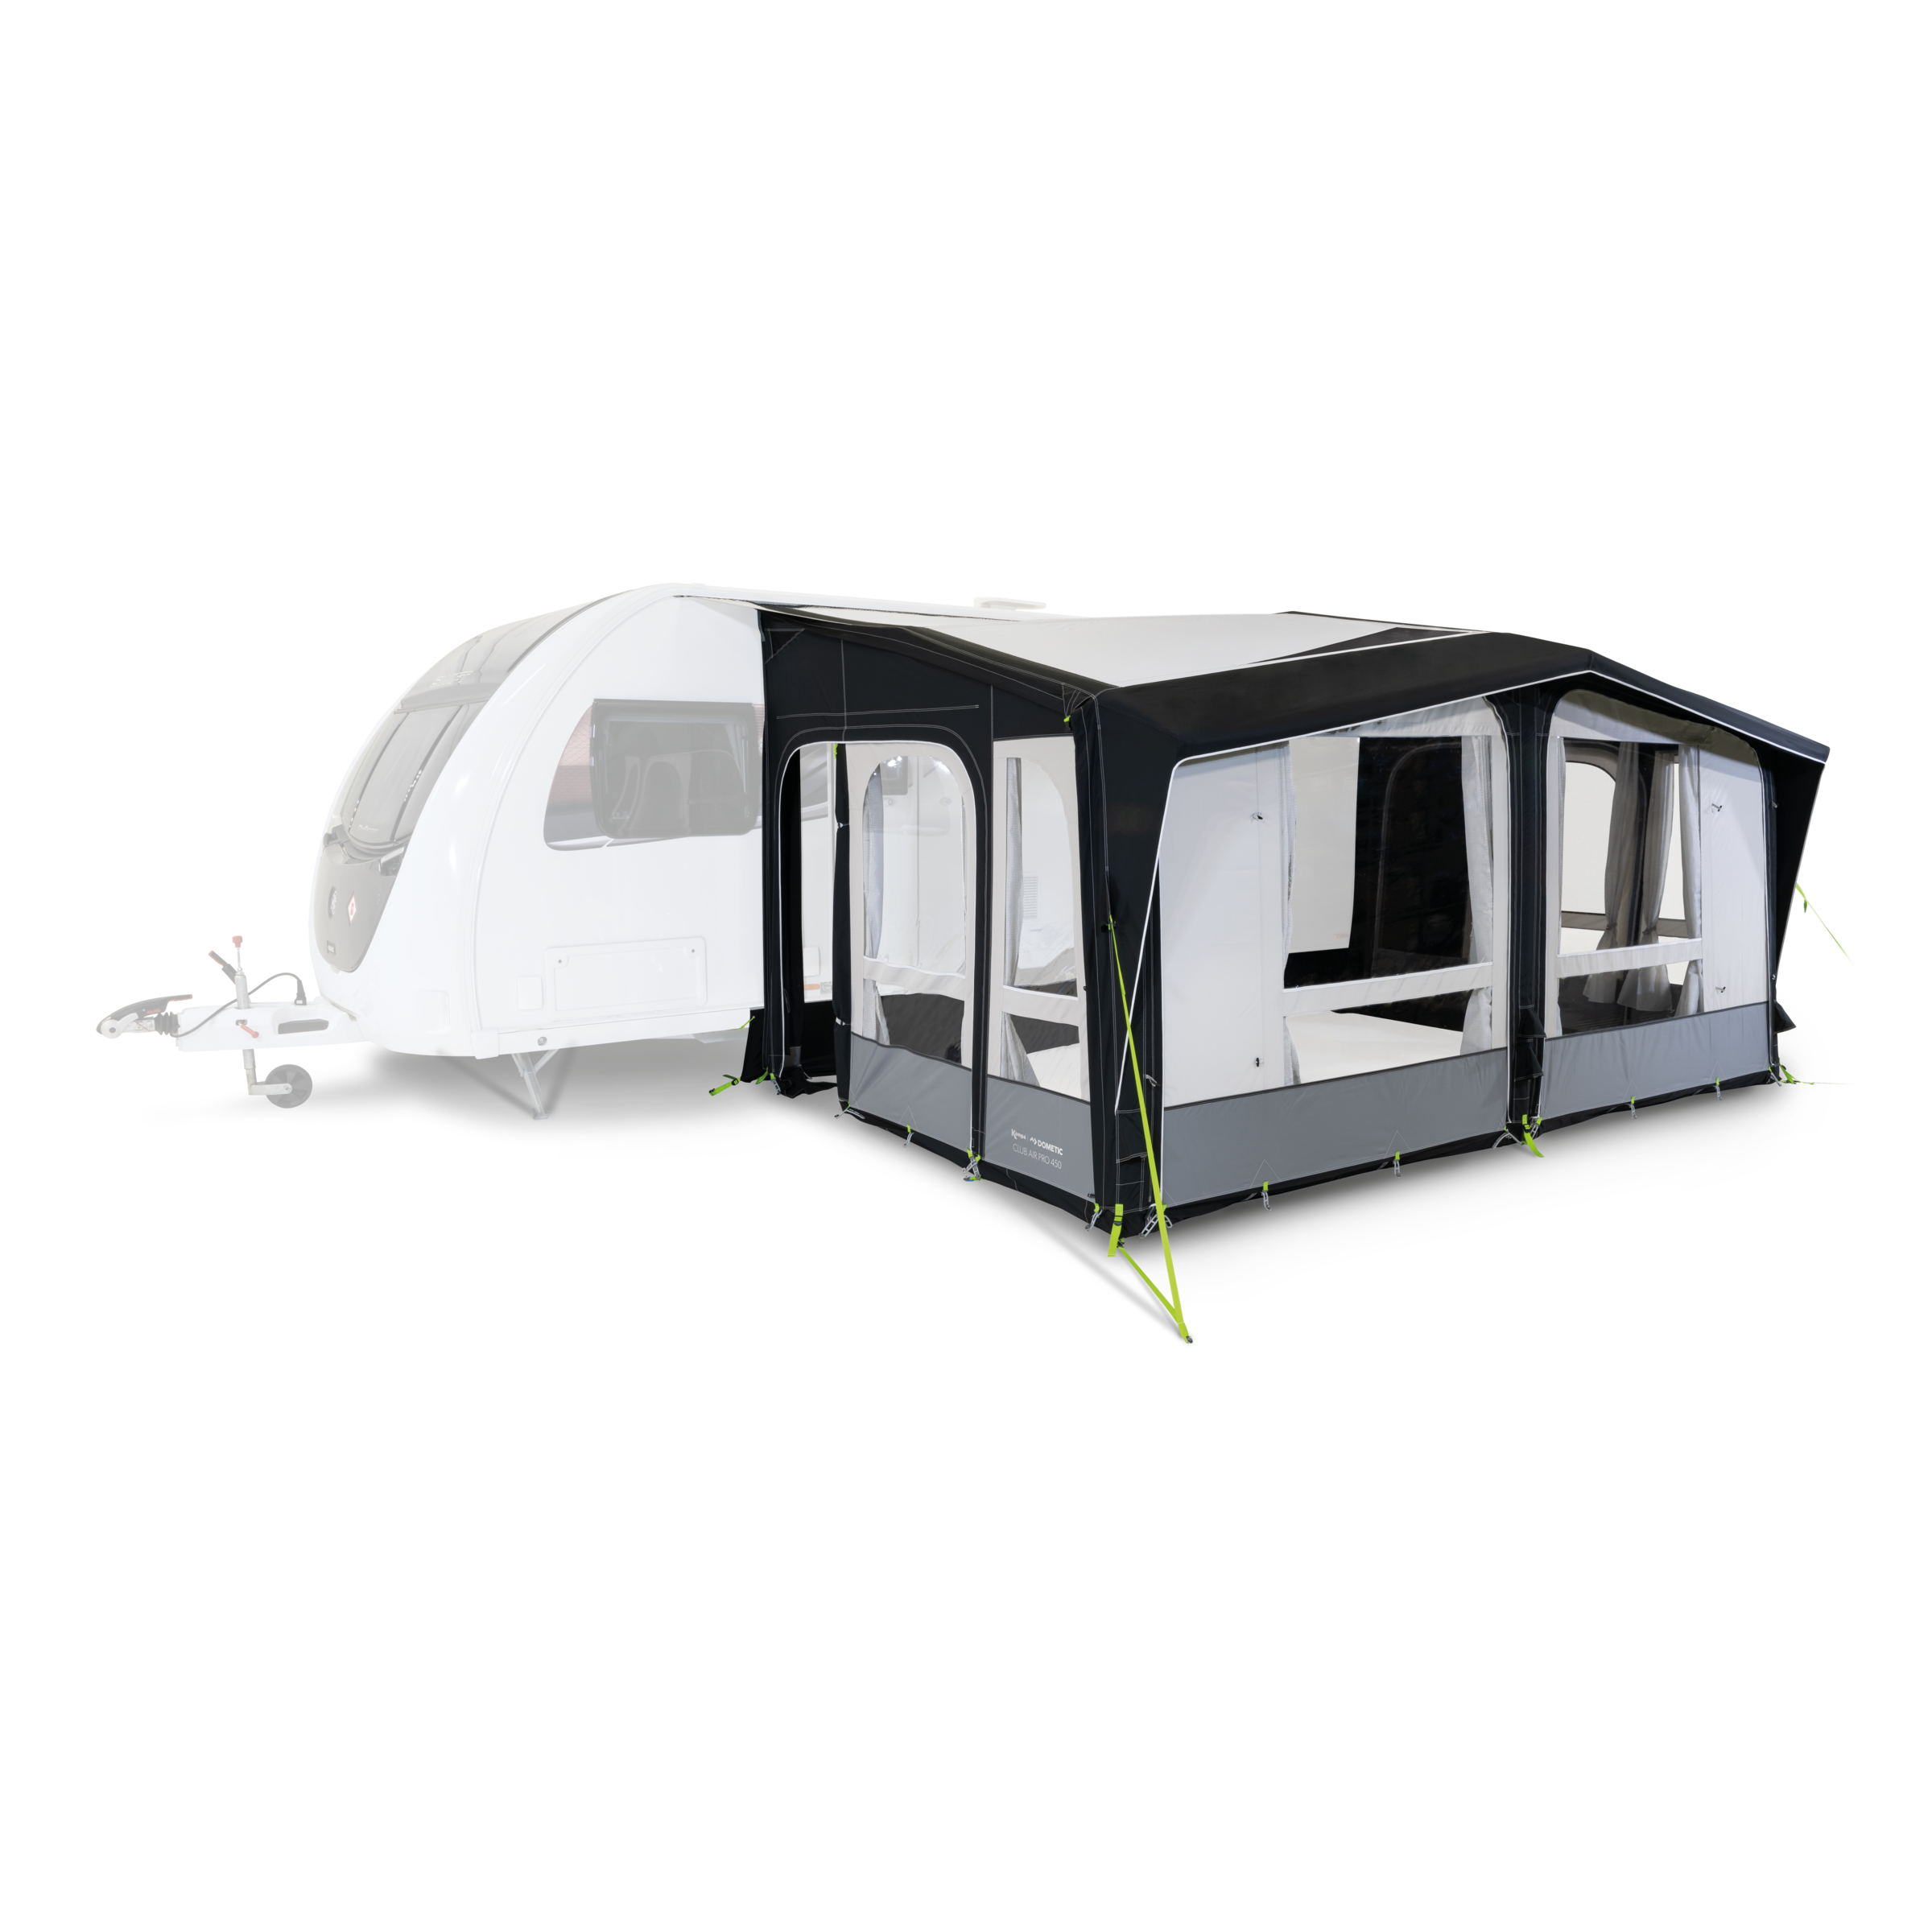 Kampa Dometic Club Air Pro 450 Awning Aw1020